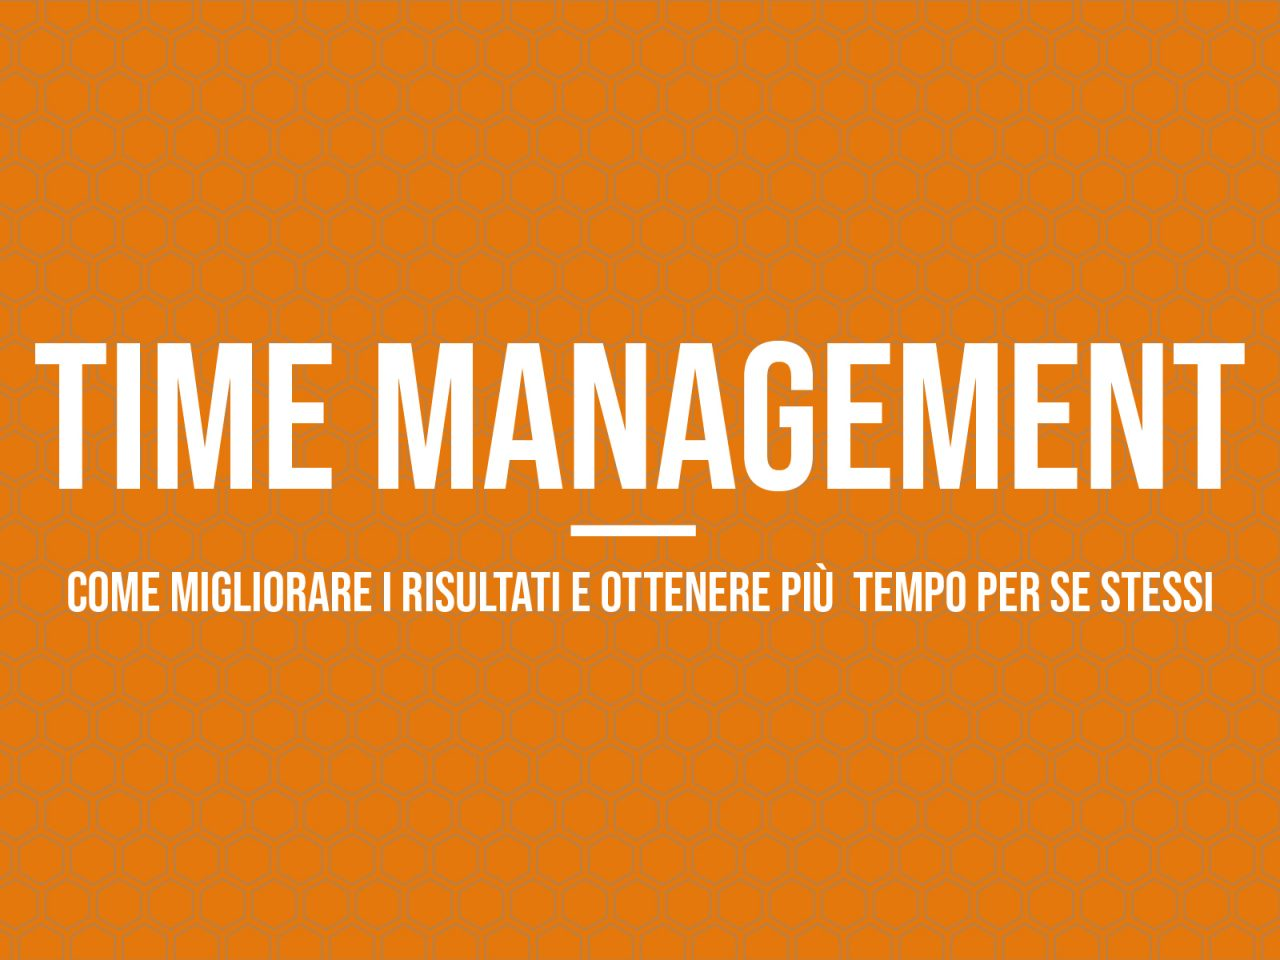 https://ram-consulting.org/wp-content/uploads/2021/01/corso-time-management-1280x960.jpg